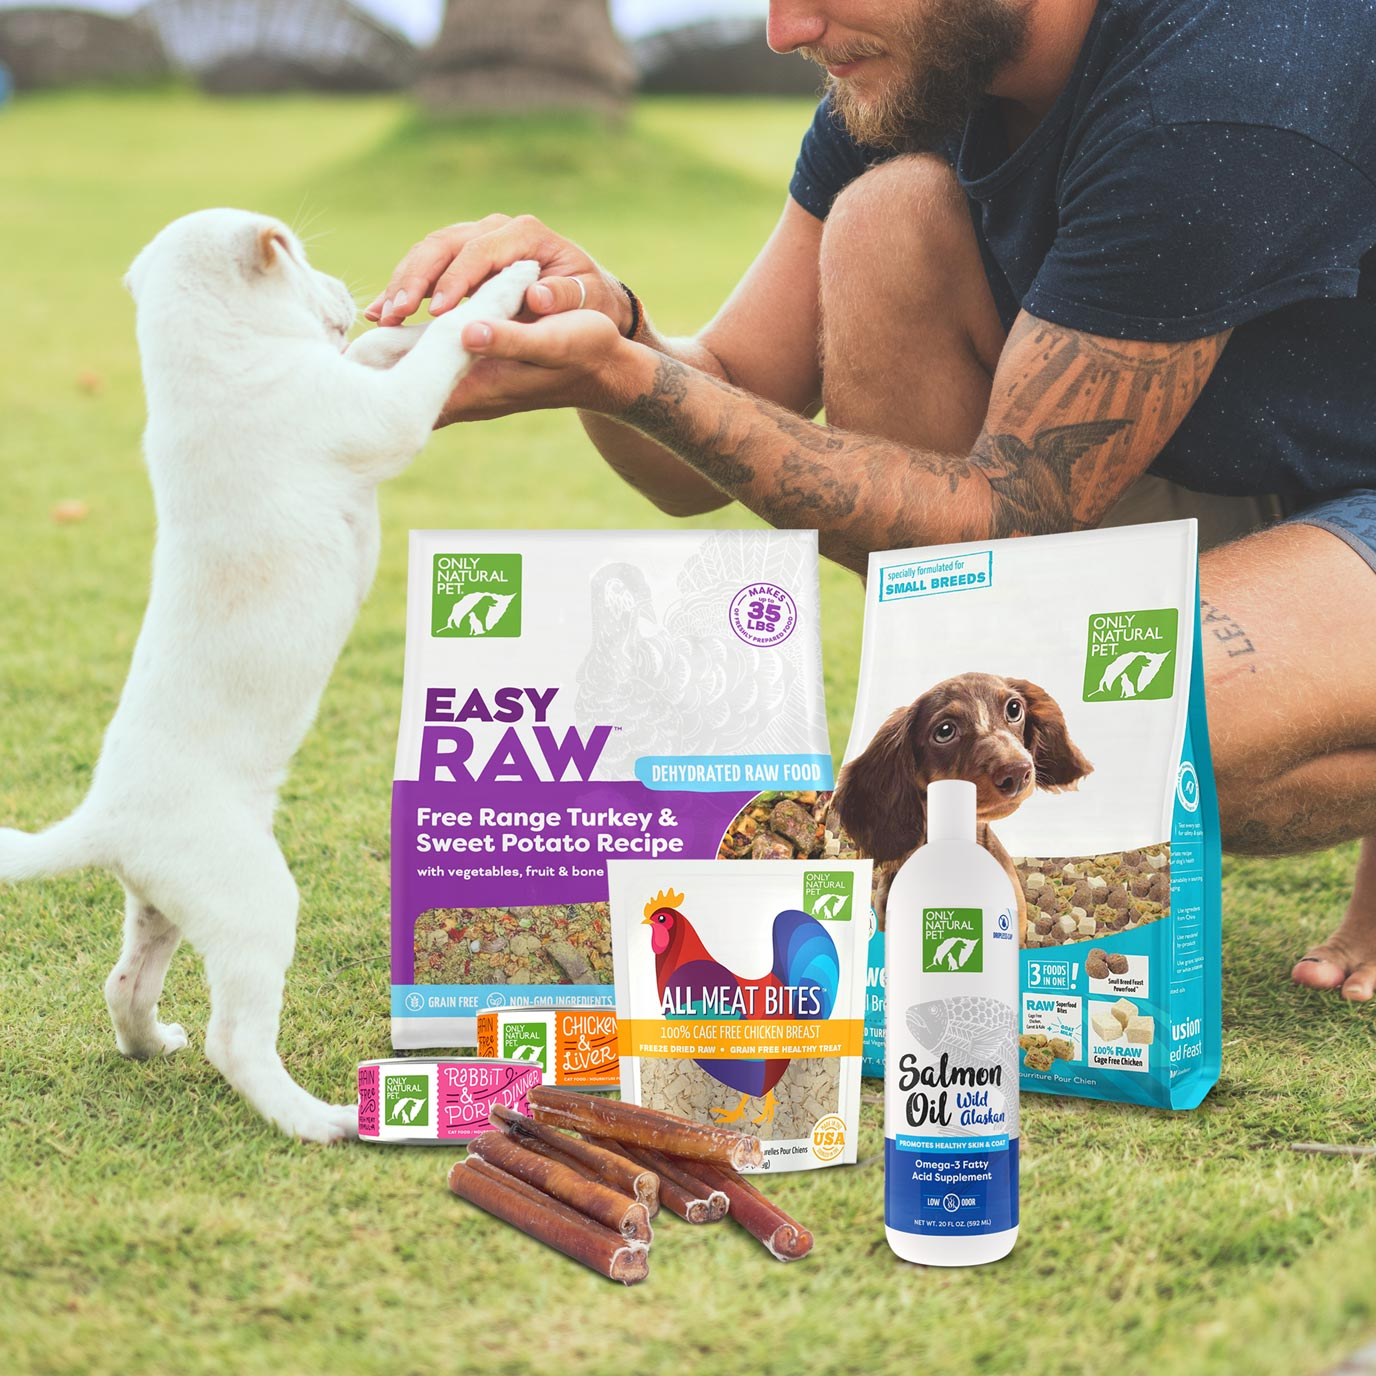 All Natural Pet Products | Only Natural Pet